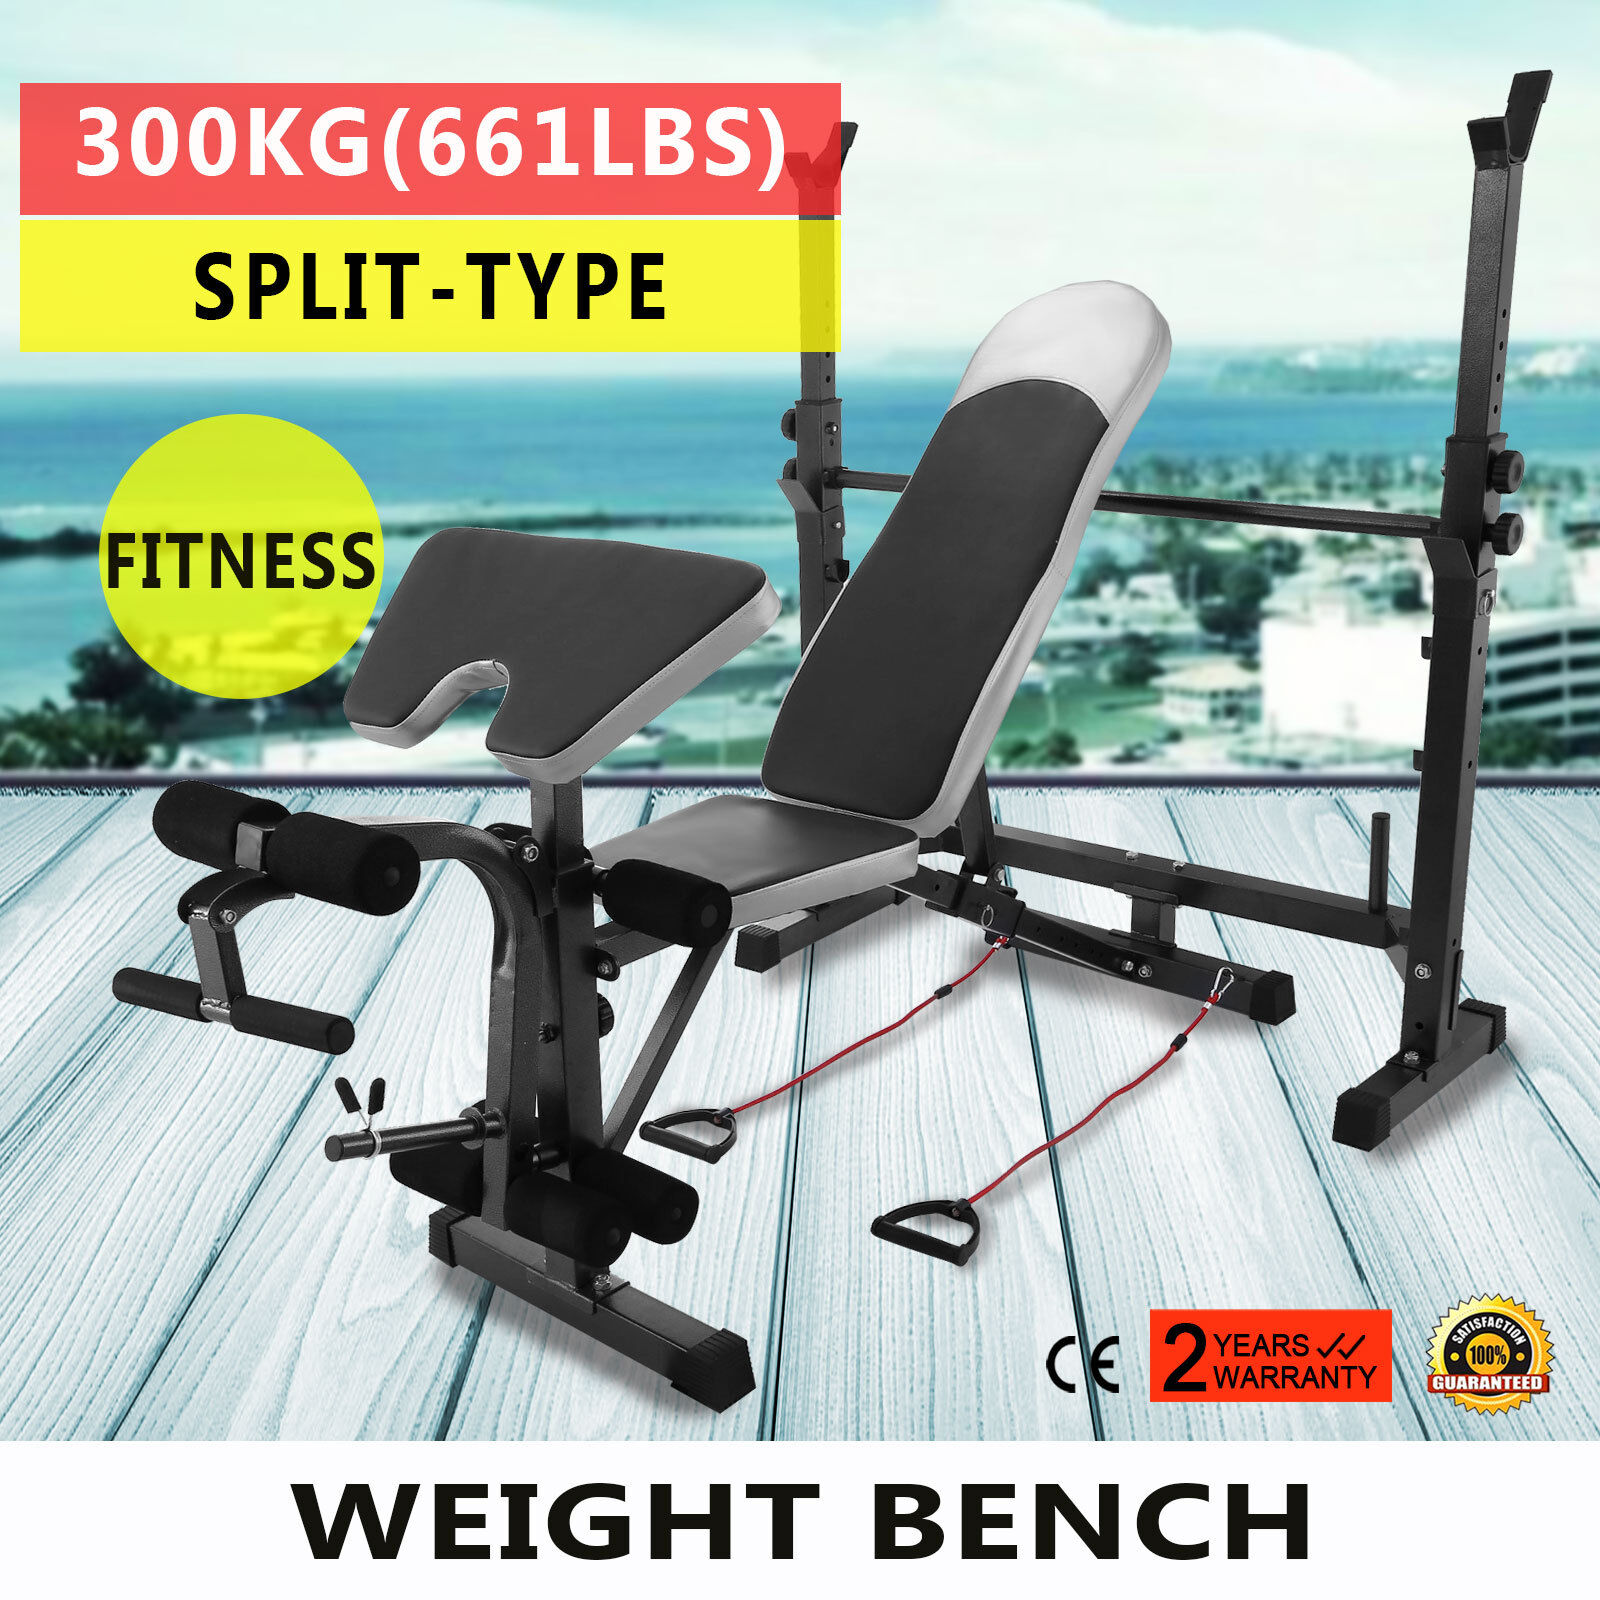 Weight Lifting Bench 660 LBS Fitness Home  Gym Bench Set Steel Multi Station  fast shipping to you